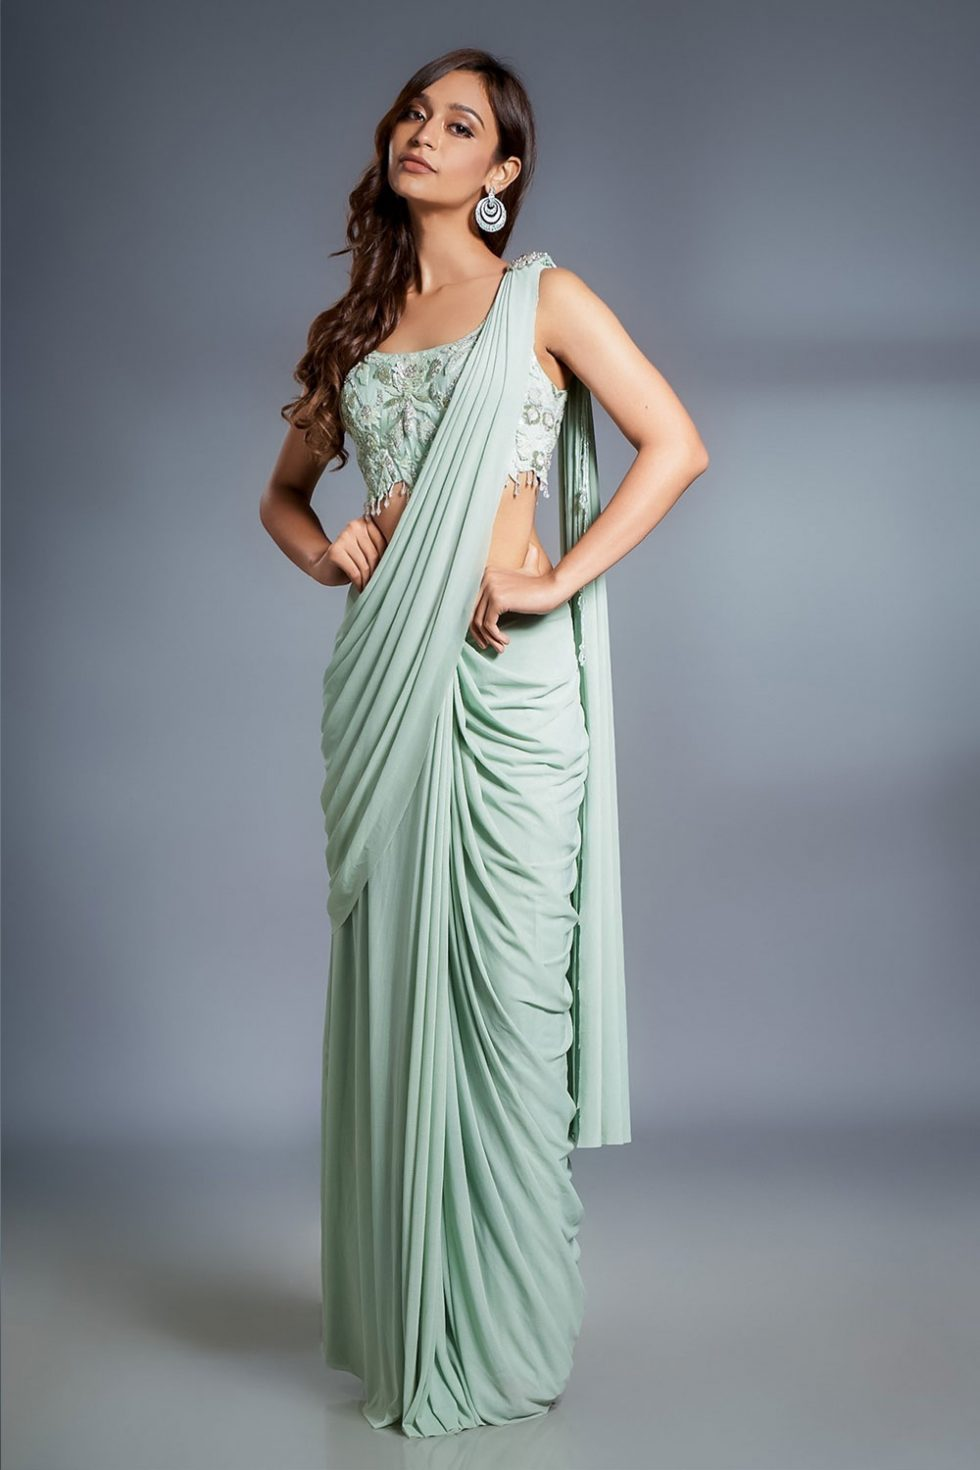 Mint green pre stitched draped saree and matching hand embroidered blouse with cut work and a jewelled broach with tasseled details.